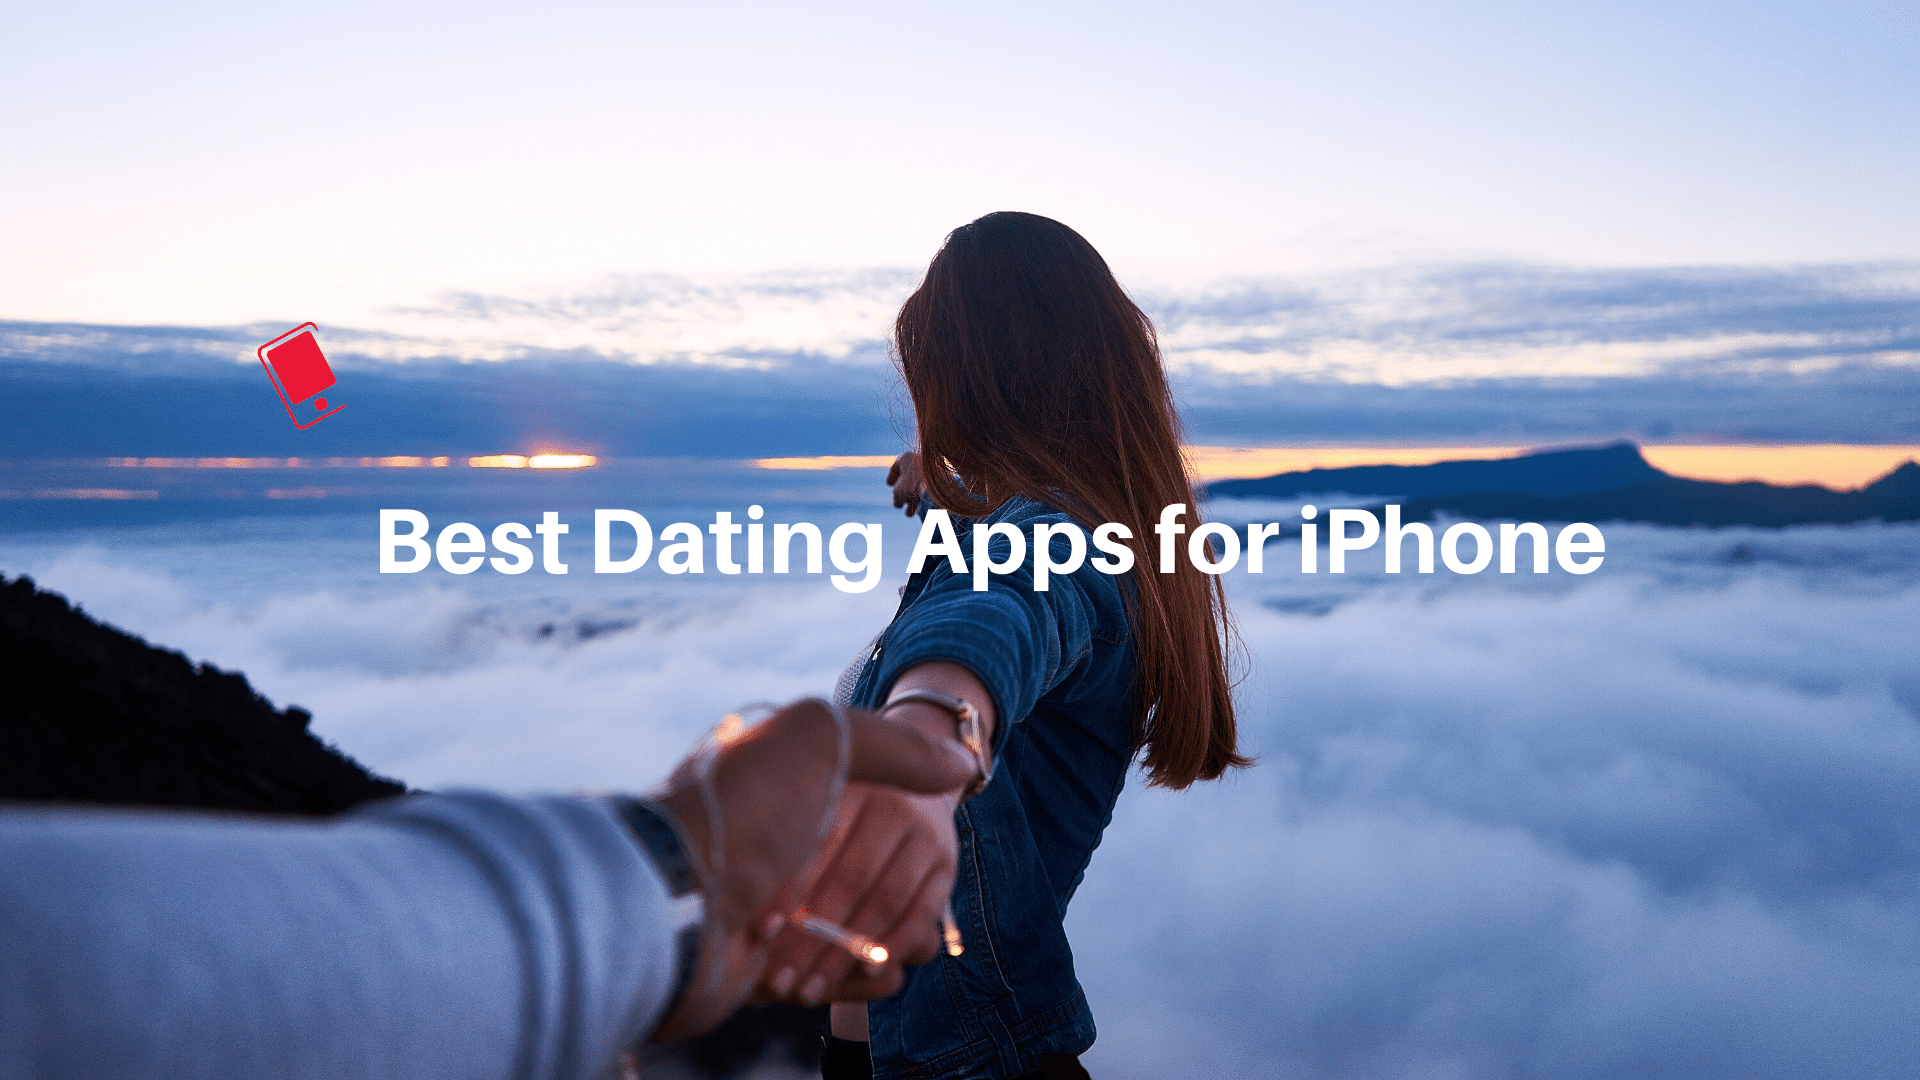 The Best Dating and Hookup Apps for iPhone in 2020